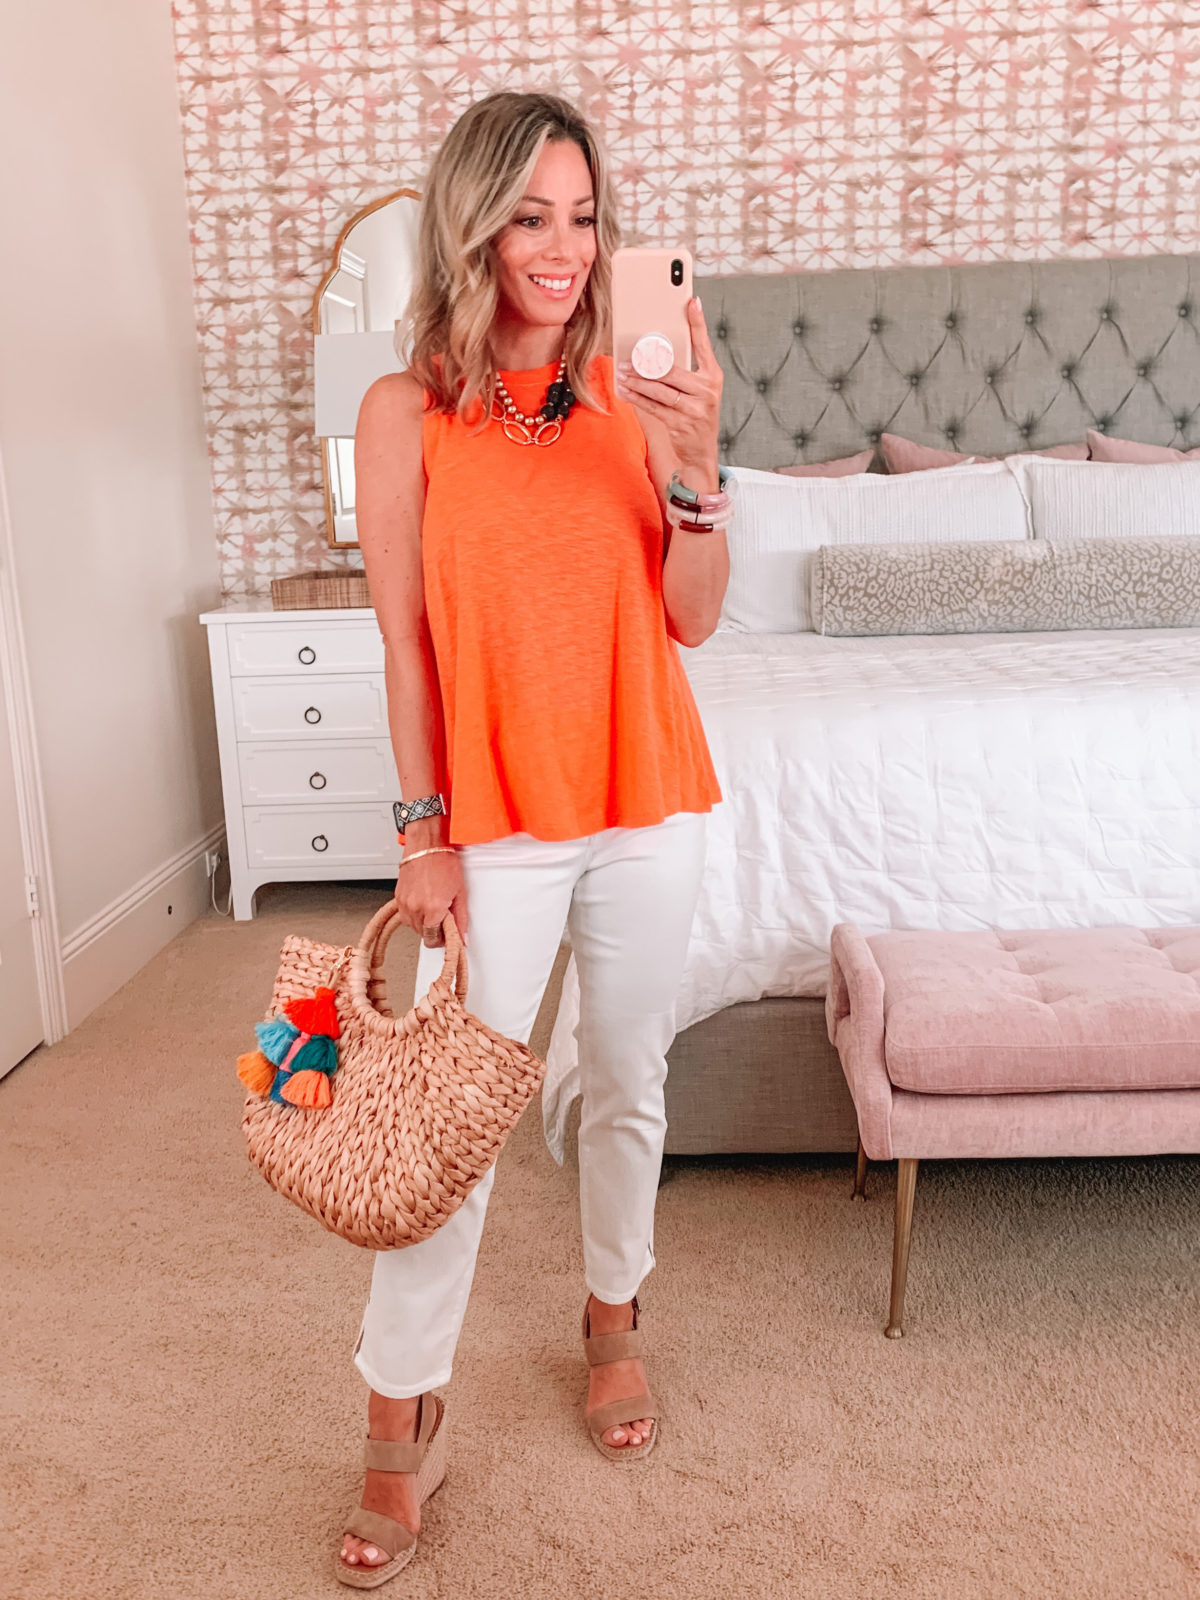 Dressing Room Finds, Orange Tank and White Jeans, Woven Tote and Tassel